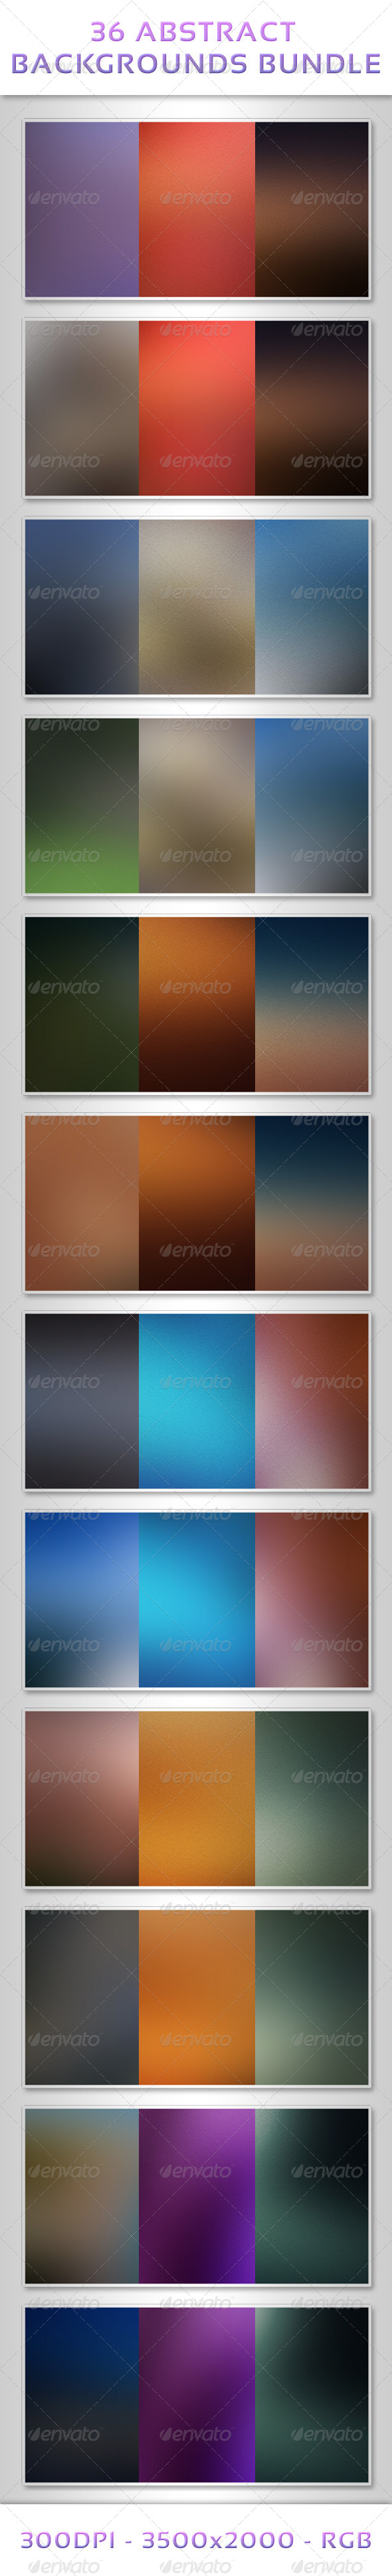 36 Abstract Backgrounds Bundle